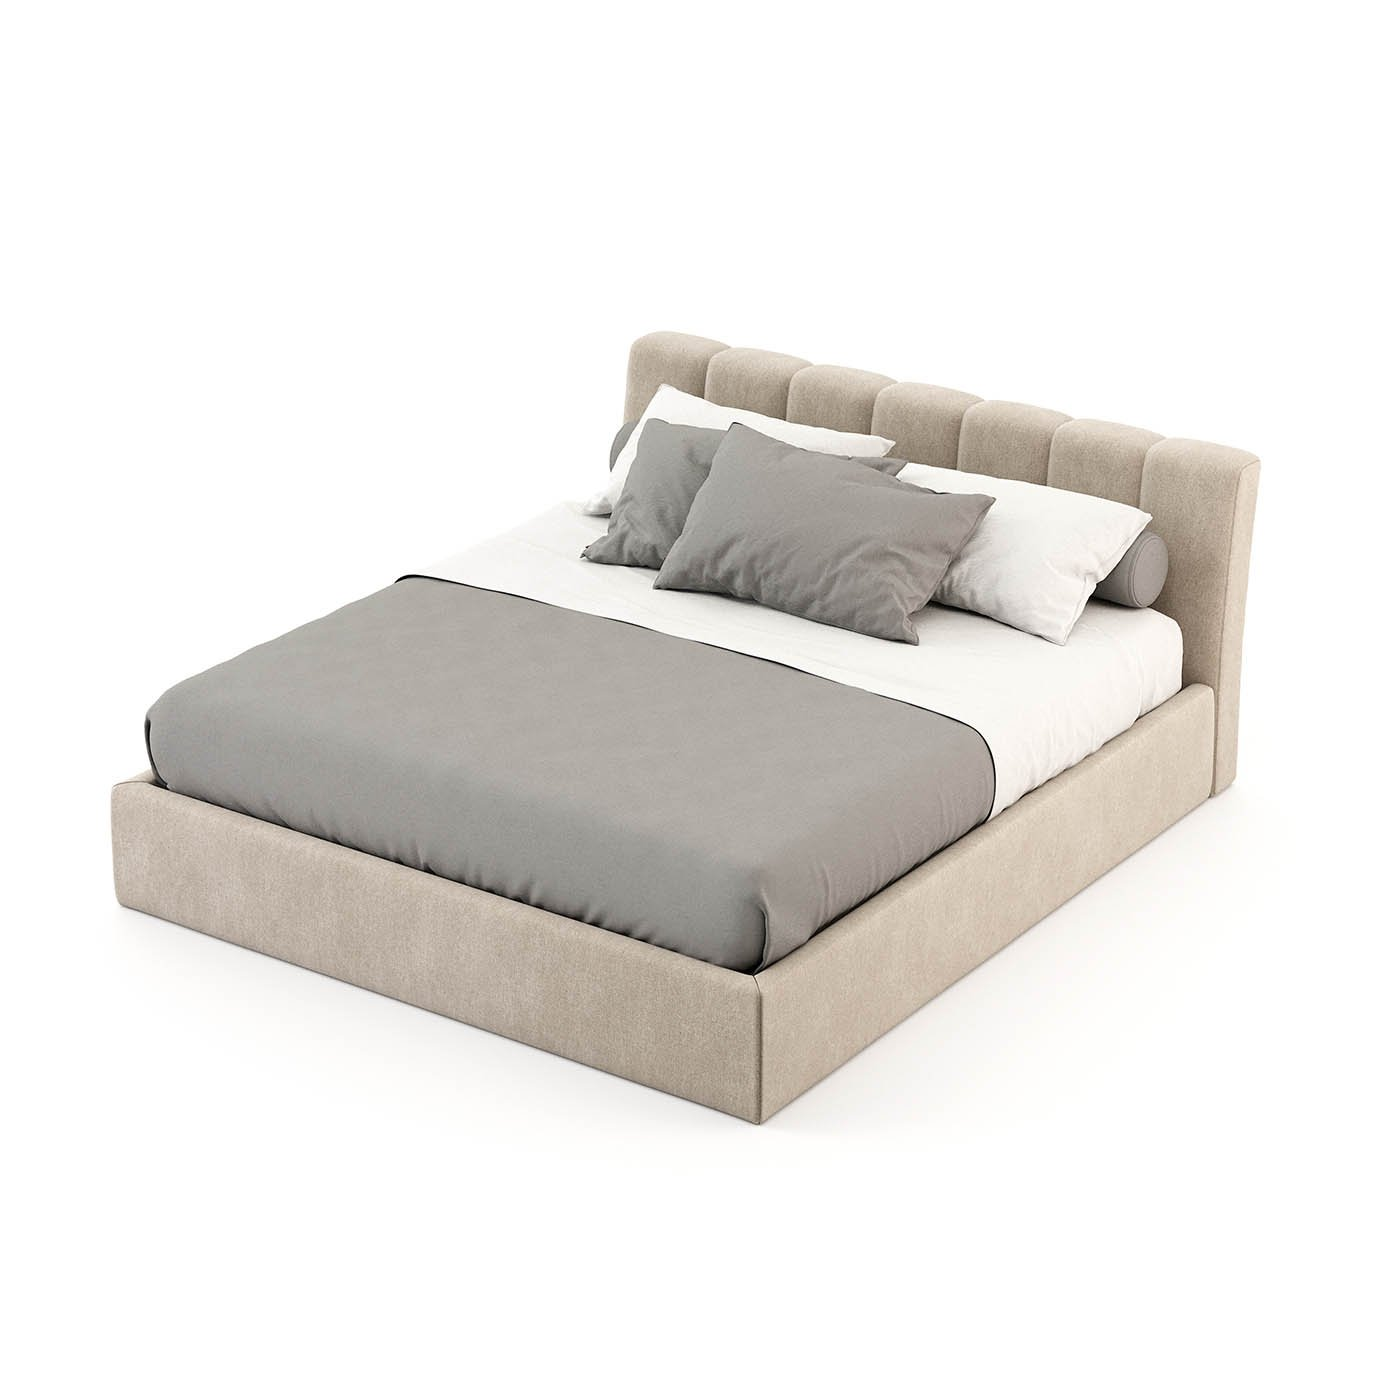 Norma Bed